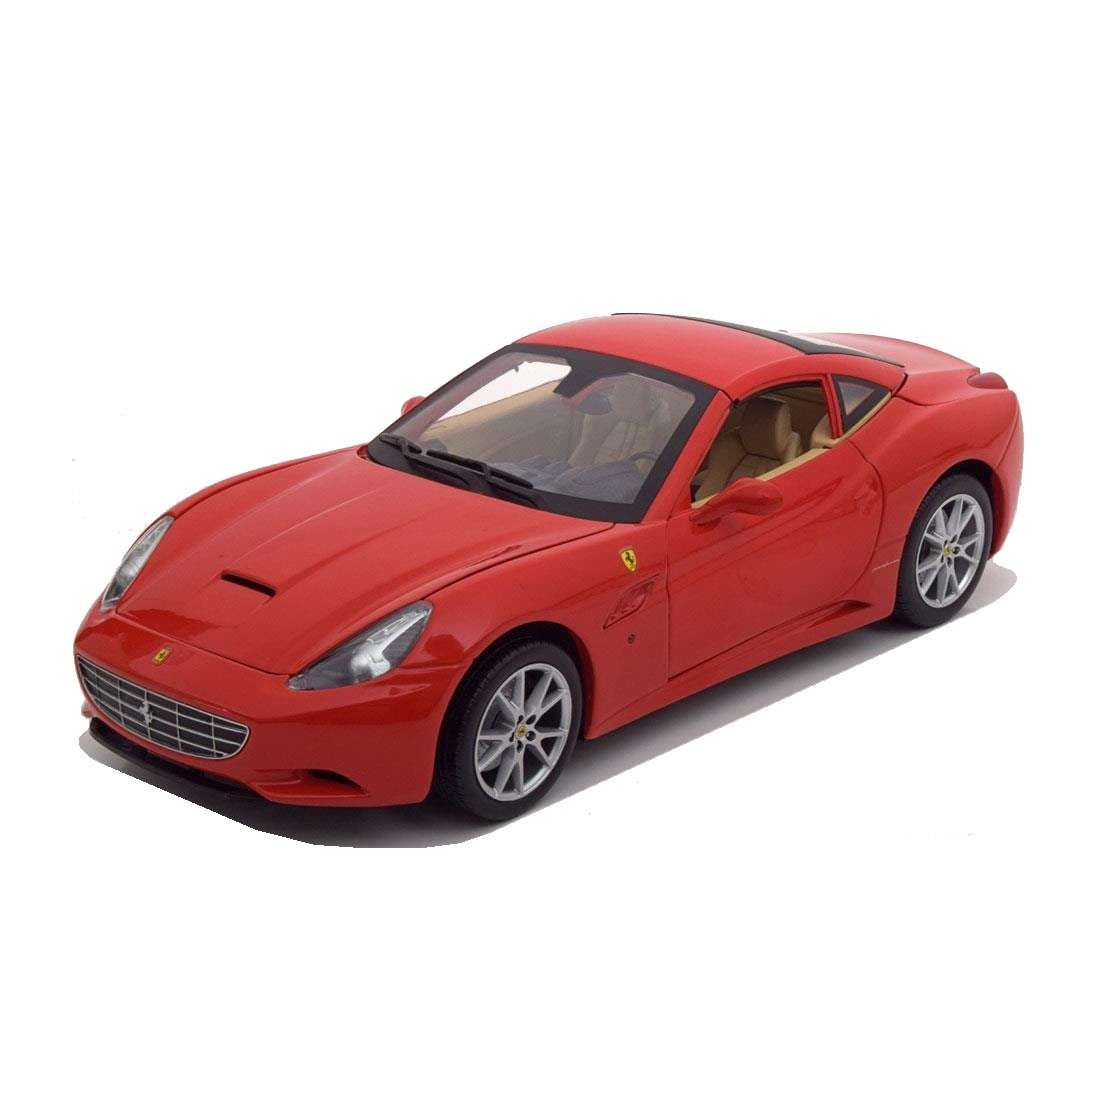 Diecast Car 1/18: Street Cars - Ferrari California Convertible 2008 Photo